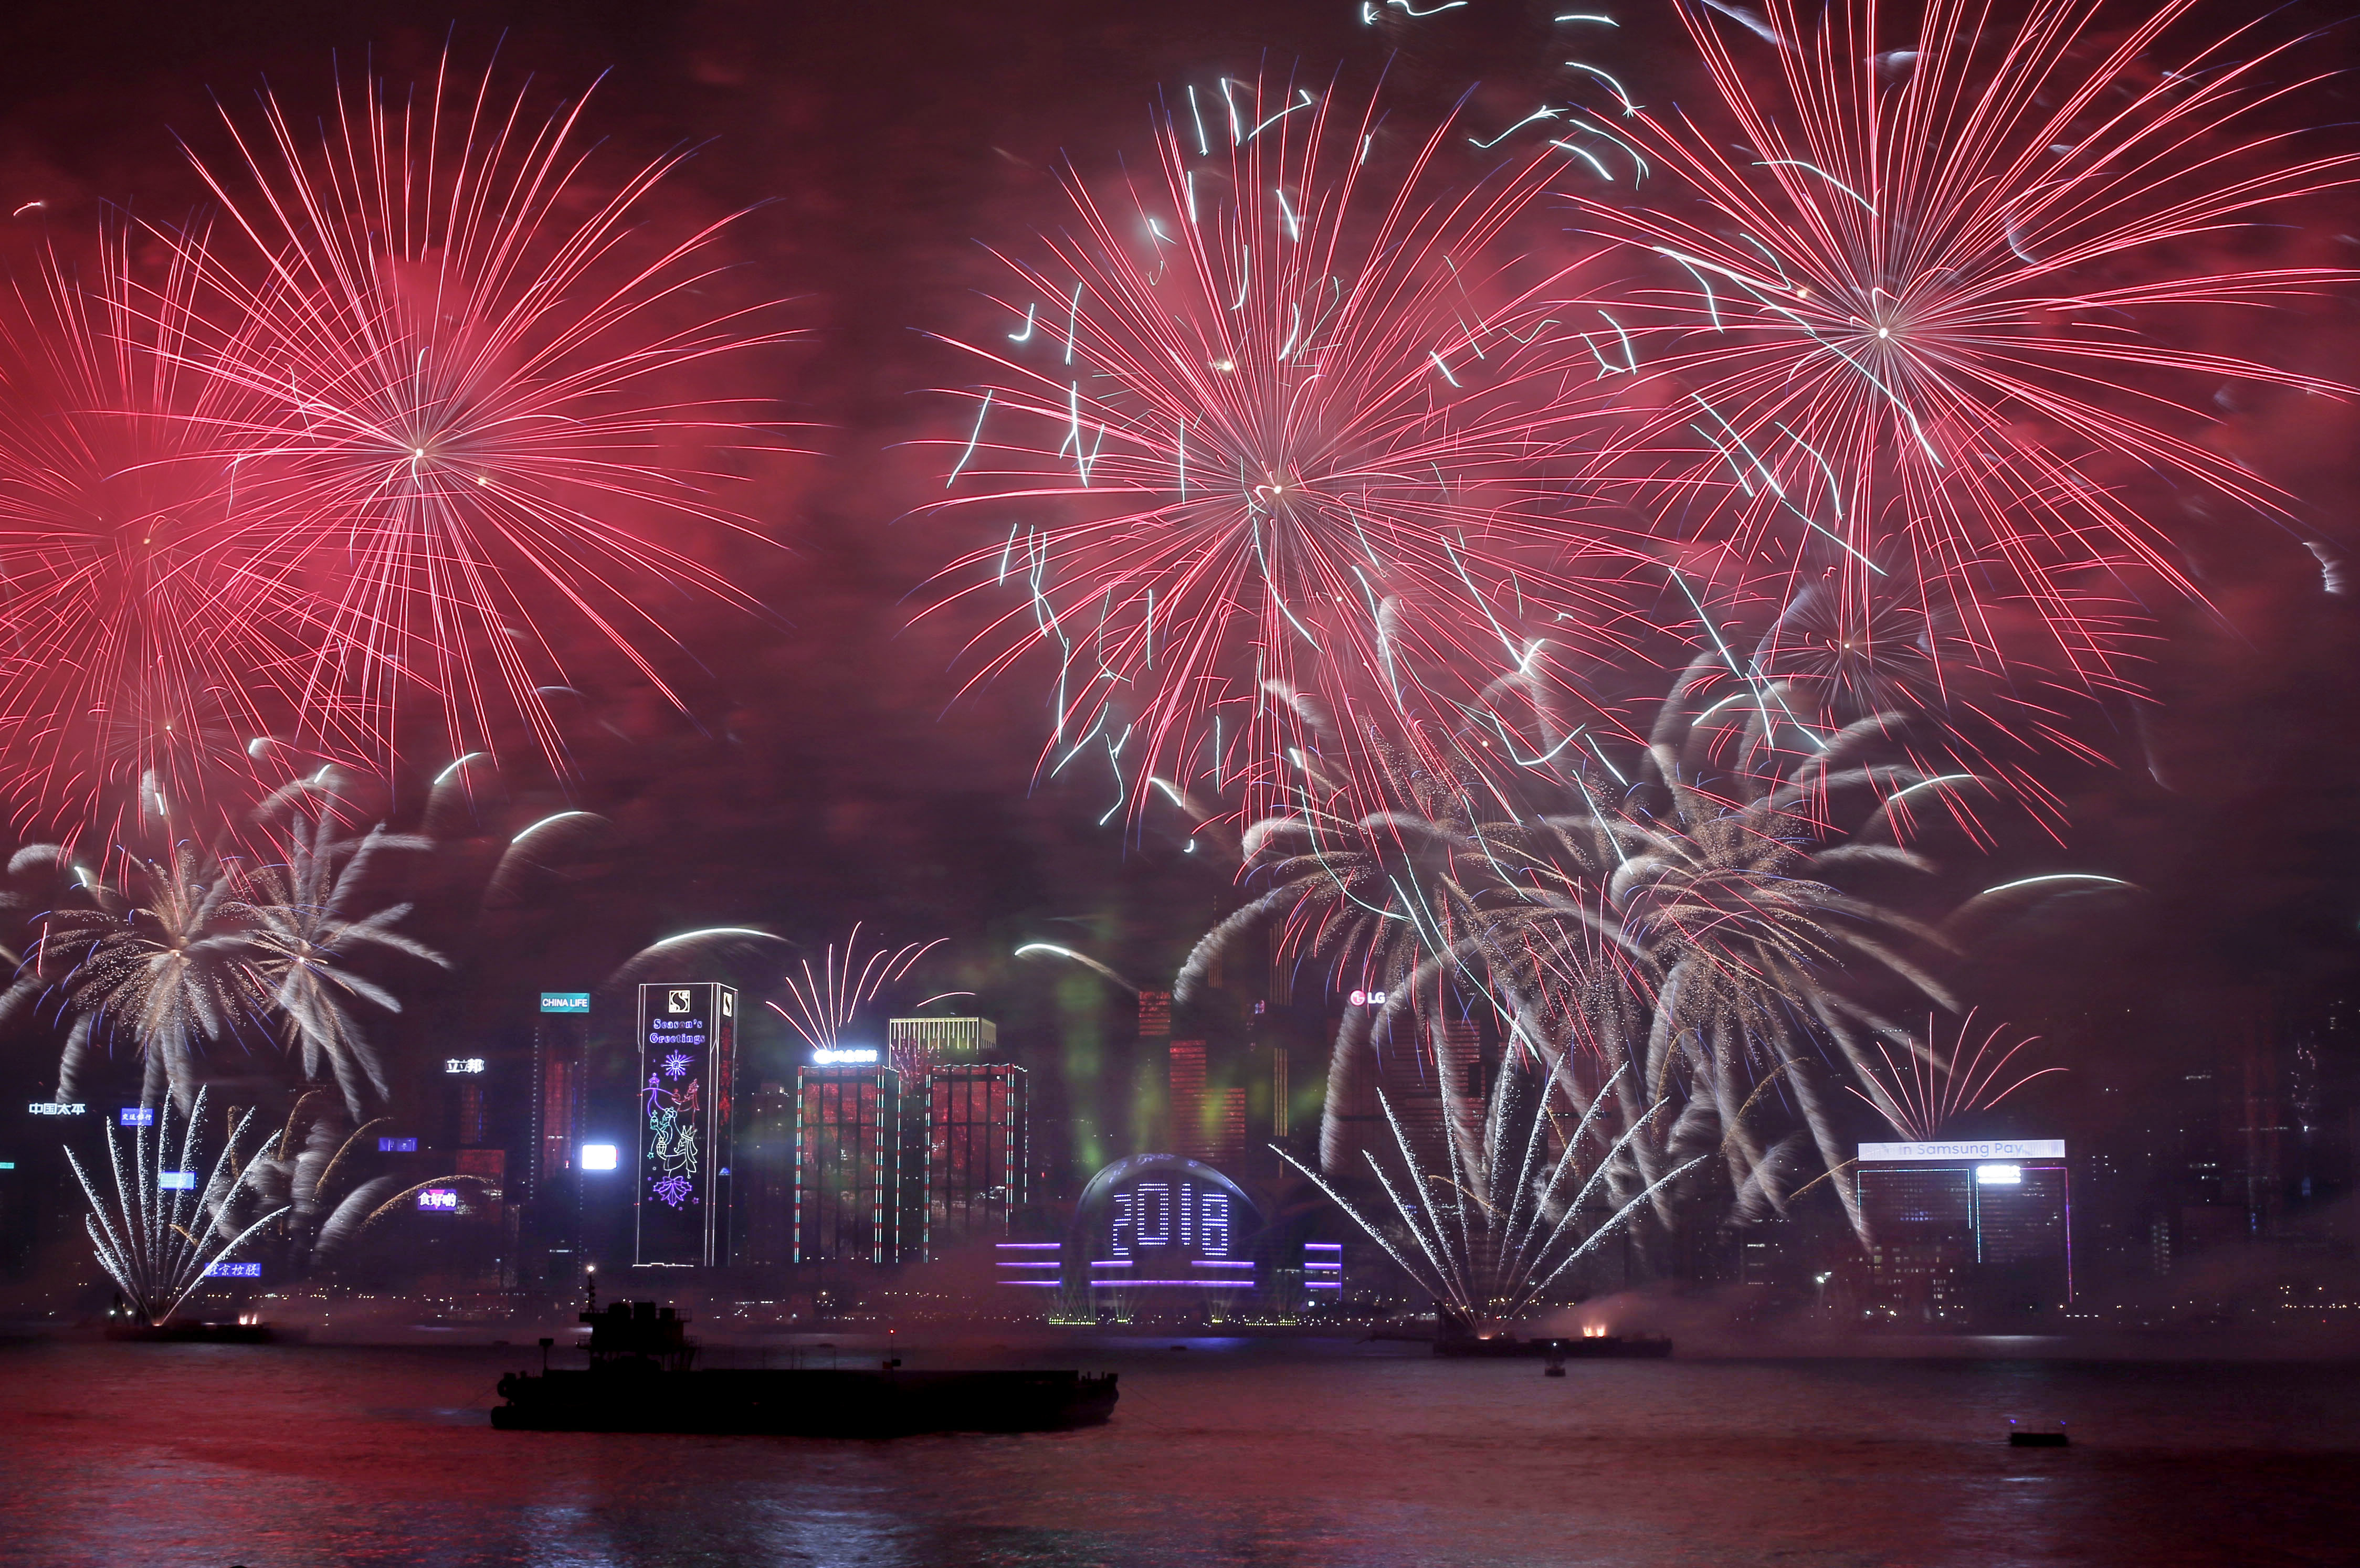 <div class='meta'><div class='origin-logo' data-origin='AP'></div><span class='caption-text' data-credit='AP Photo/Kin Cheung'>Fireworks explode over the Victoria Harbor during New Year's Eve to celebrate the start of year 2018 in Hong Kong, Monday, Jan. 1, 2018.</span></div>